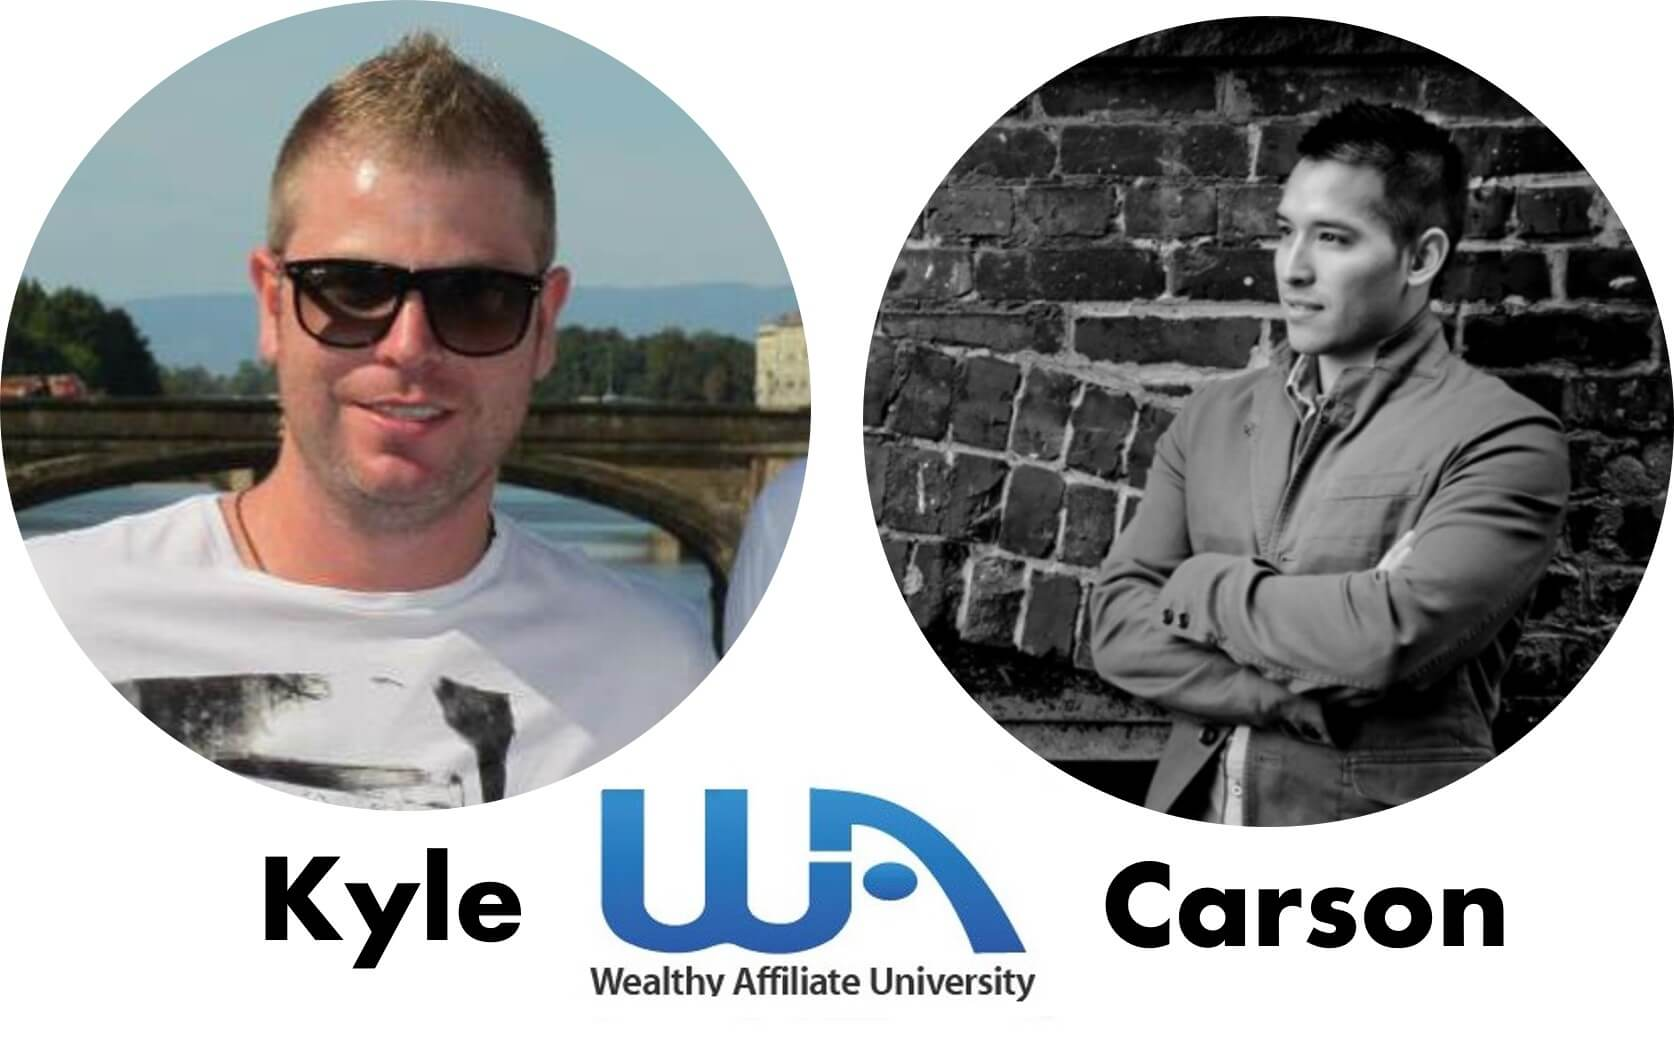 What is Wealthy Affiliate and its founder Kyle and Carson